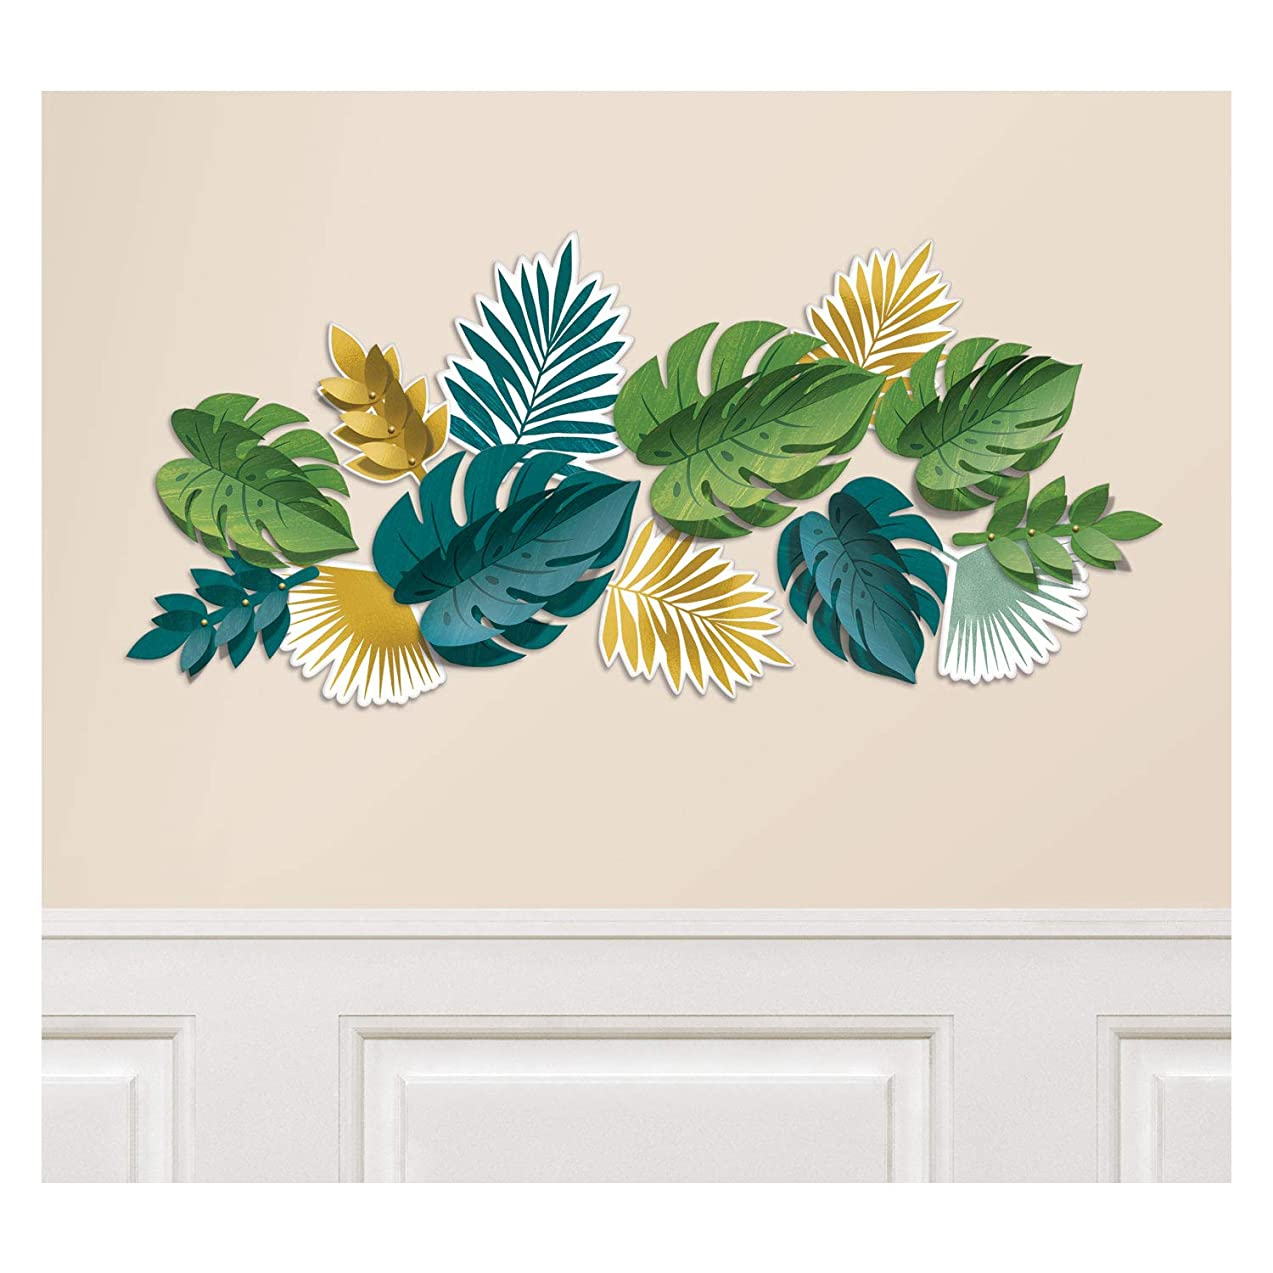 Amscan International Amscan 242623 Decoration Card Cut-Outs 1 Pack Key West